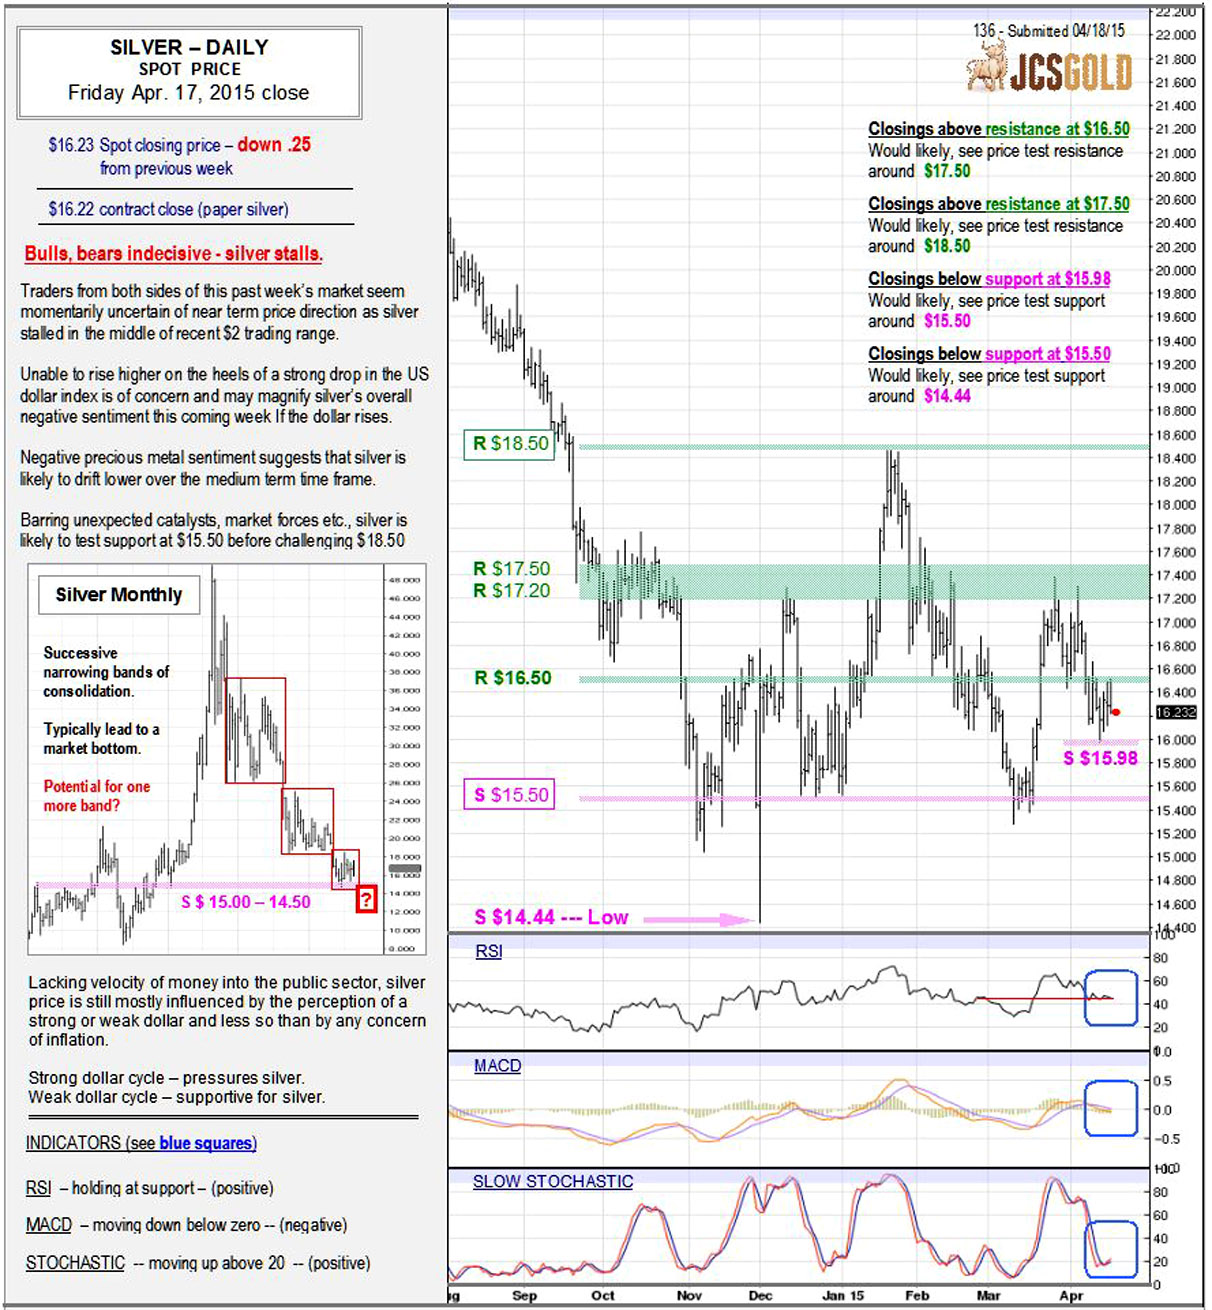 Apr 17, 2015 chart & commentary